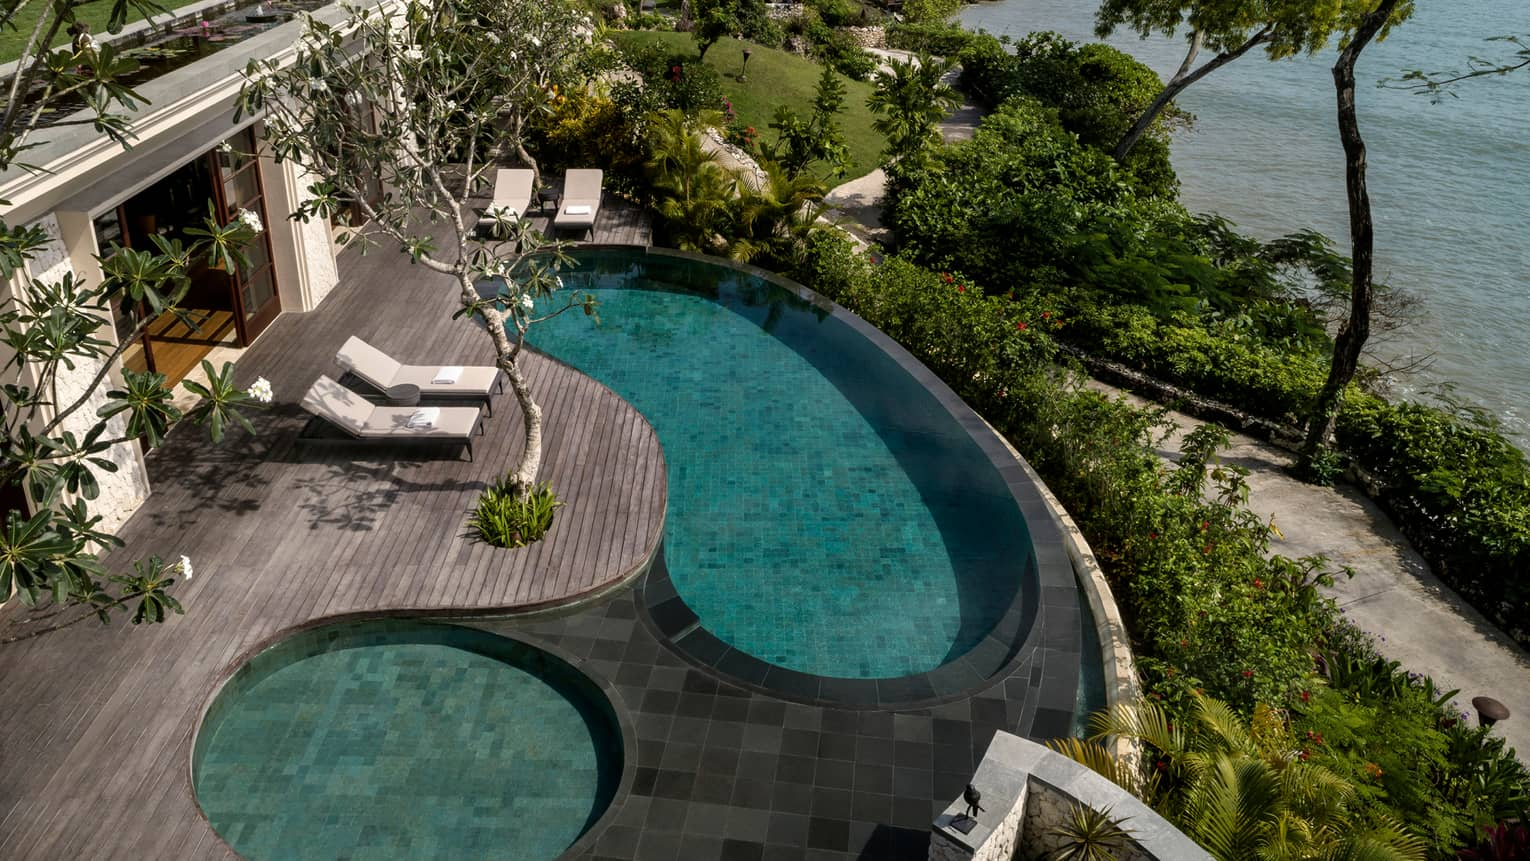 Looking down at Imperial Villa swimming pool and whirlpool on deck with white lounge chairs, garden path and ocean below